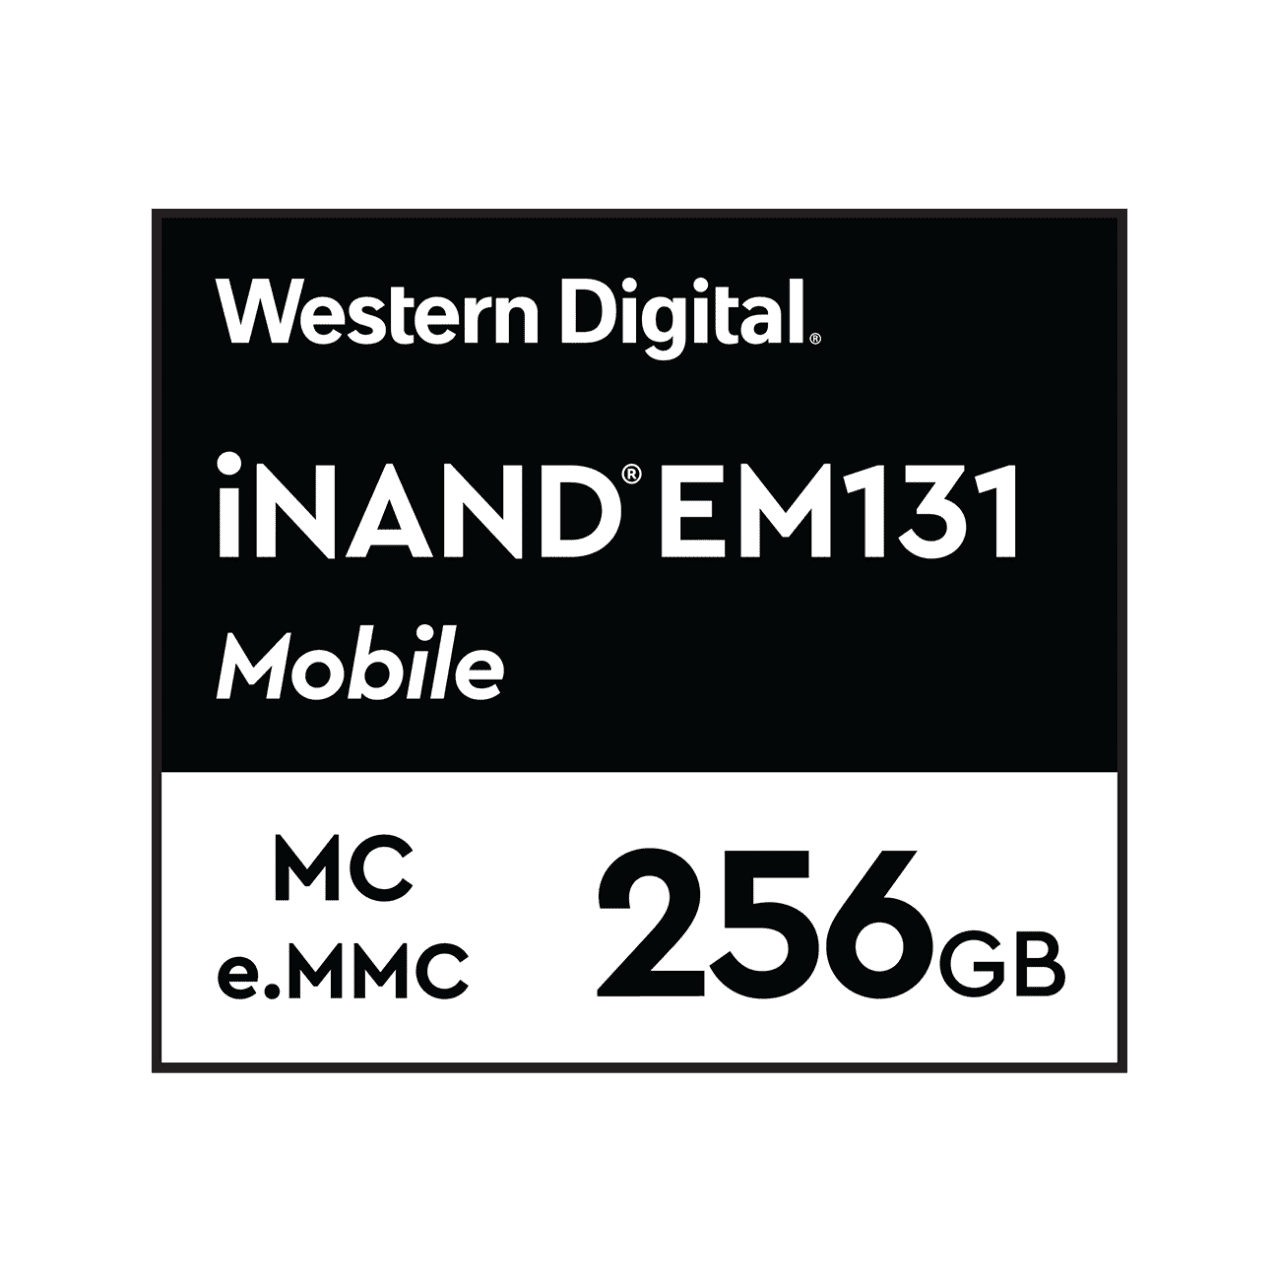 mobile-inand-cards-mc-em131-256gb-western-digital